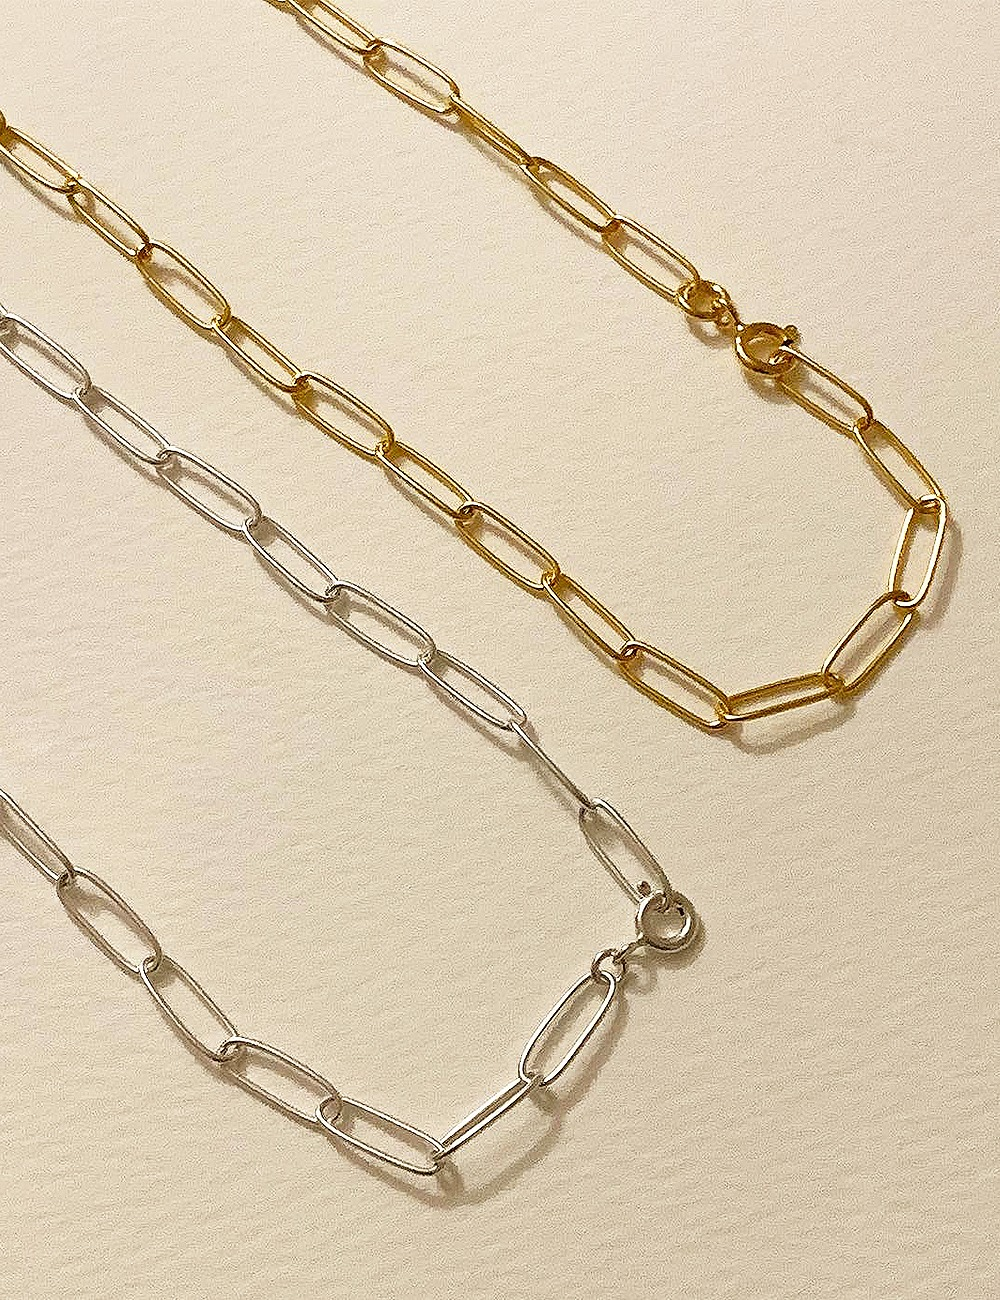 (silver 92.5) Angle chain necklace